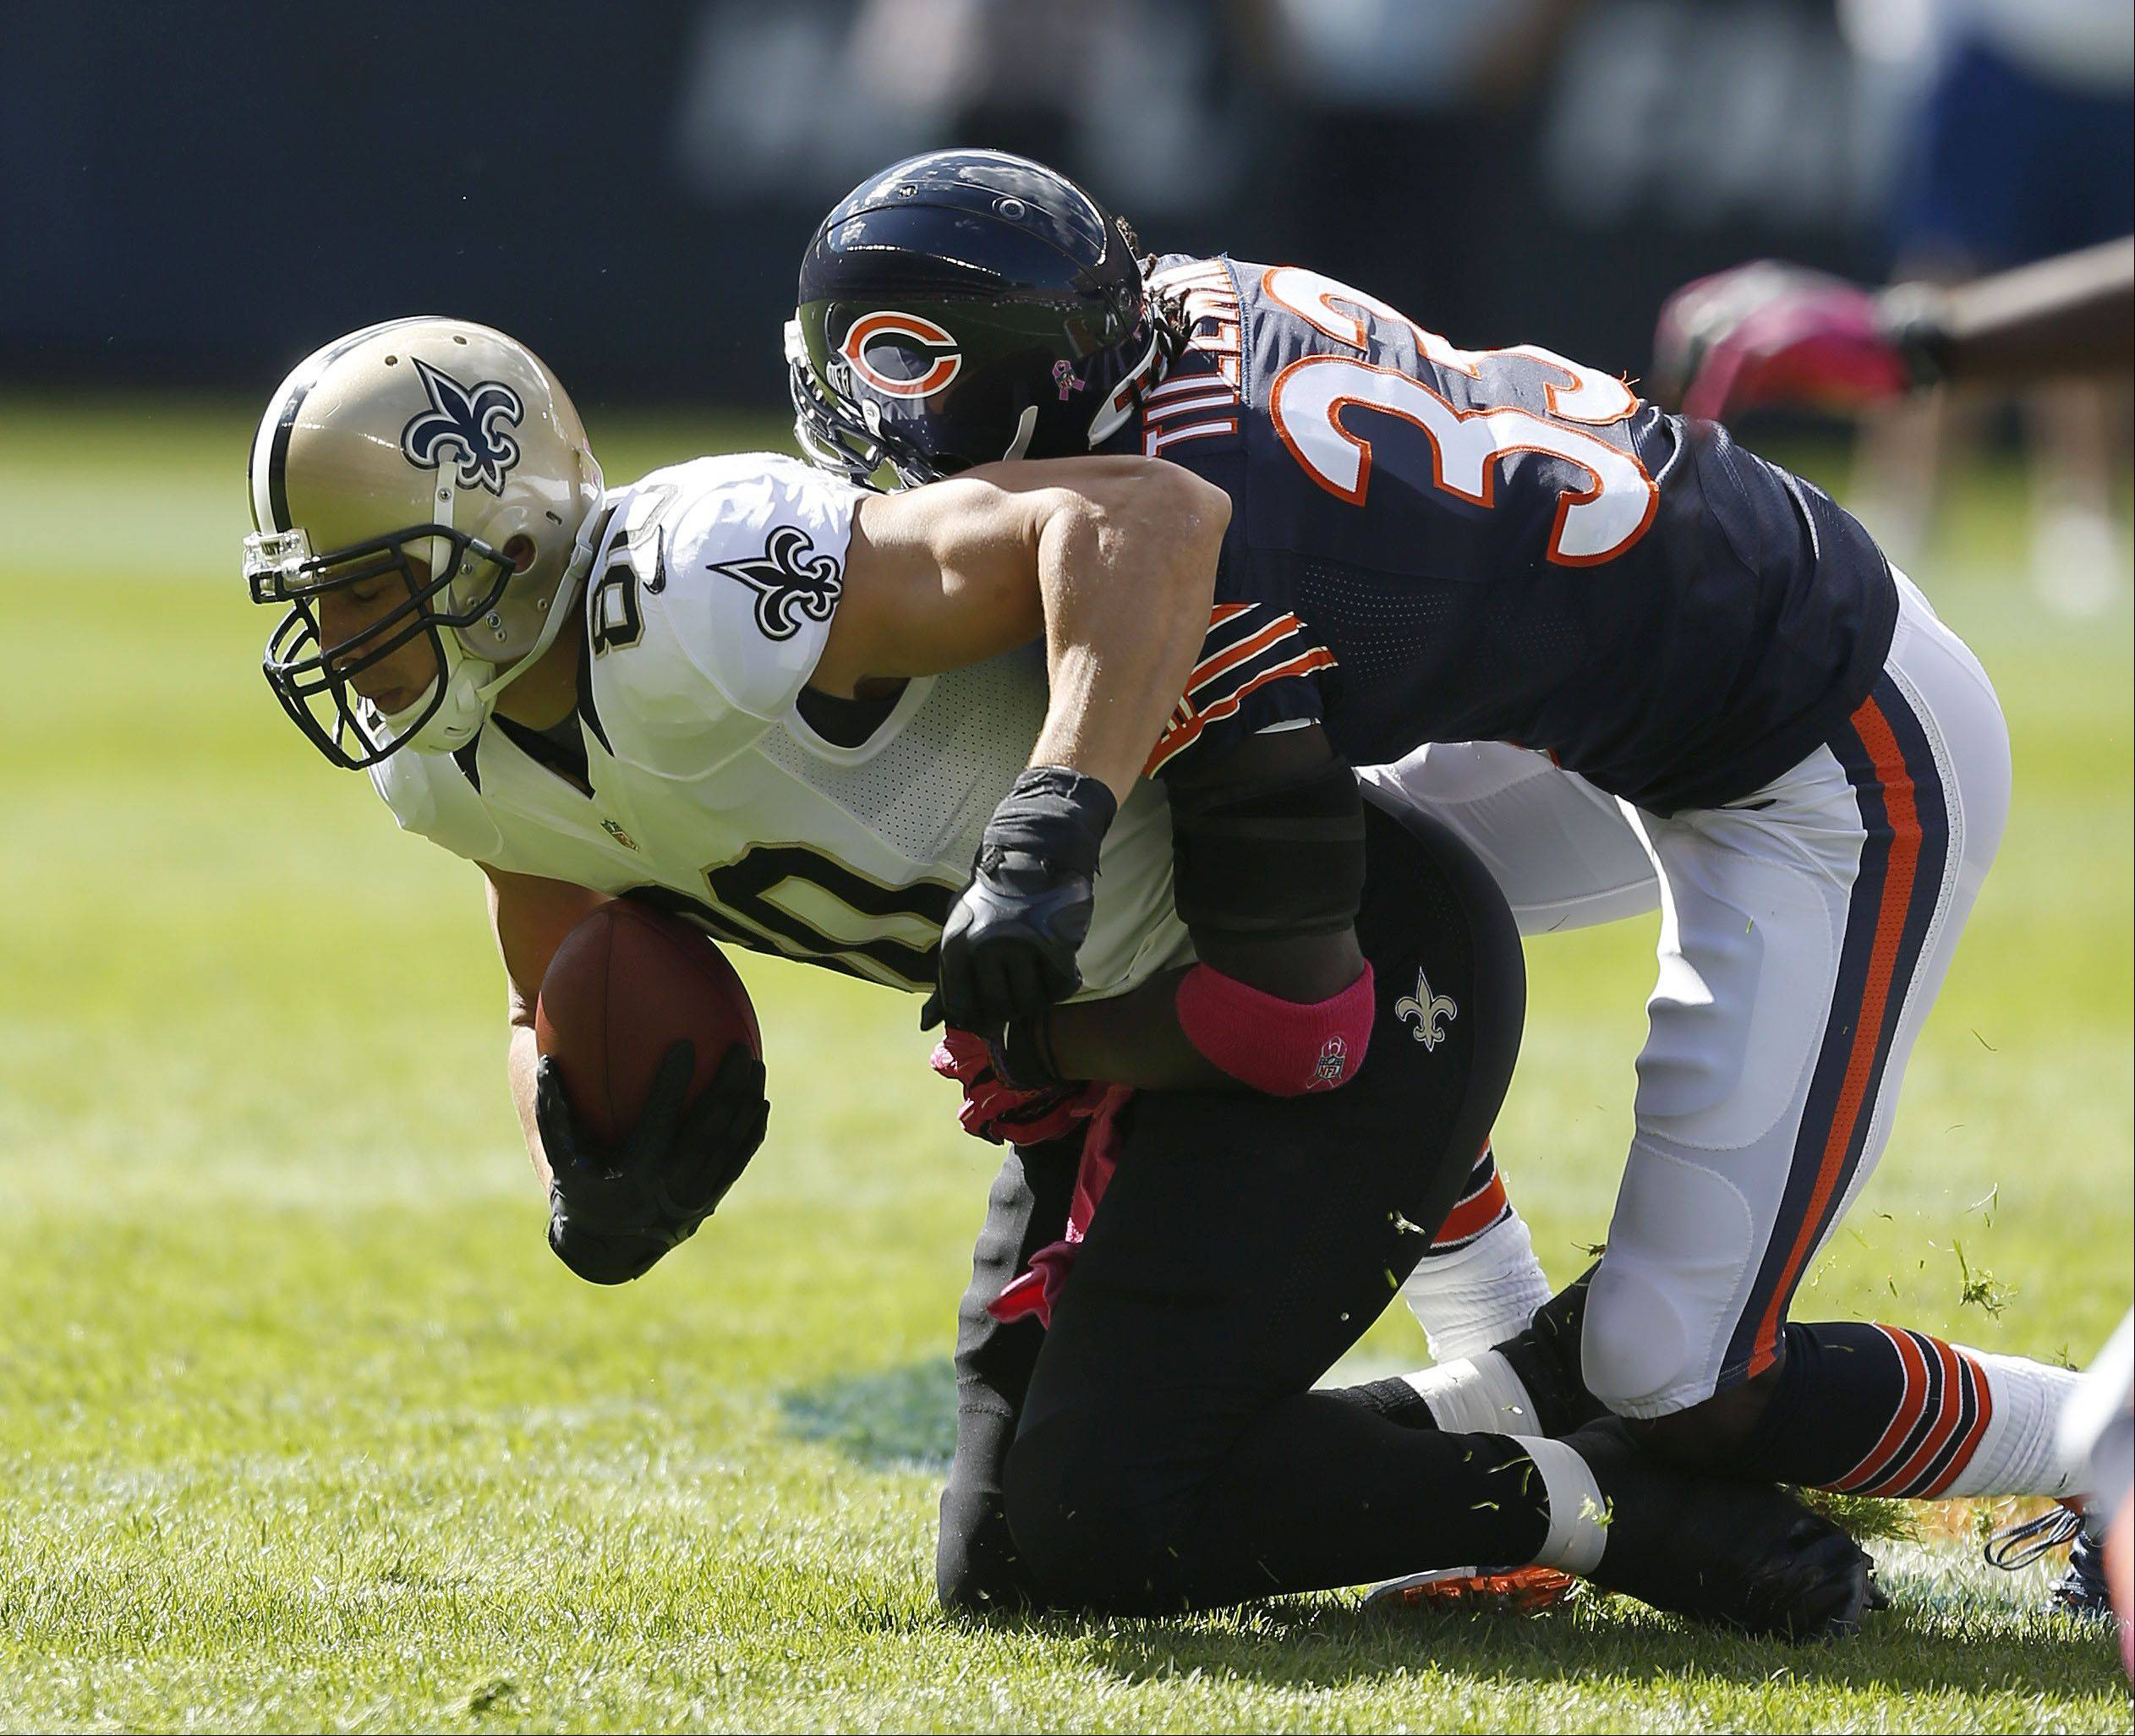 New Orleans Saints tight end Jimmy Graham is tackled by Chicago Bears cornerback Charles Tillman.